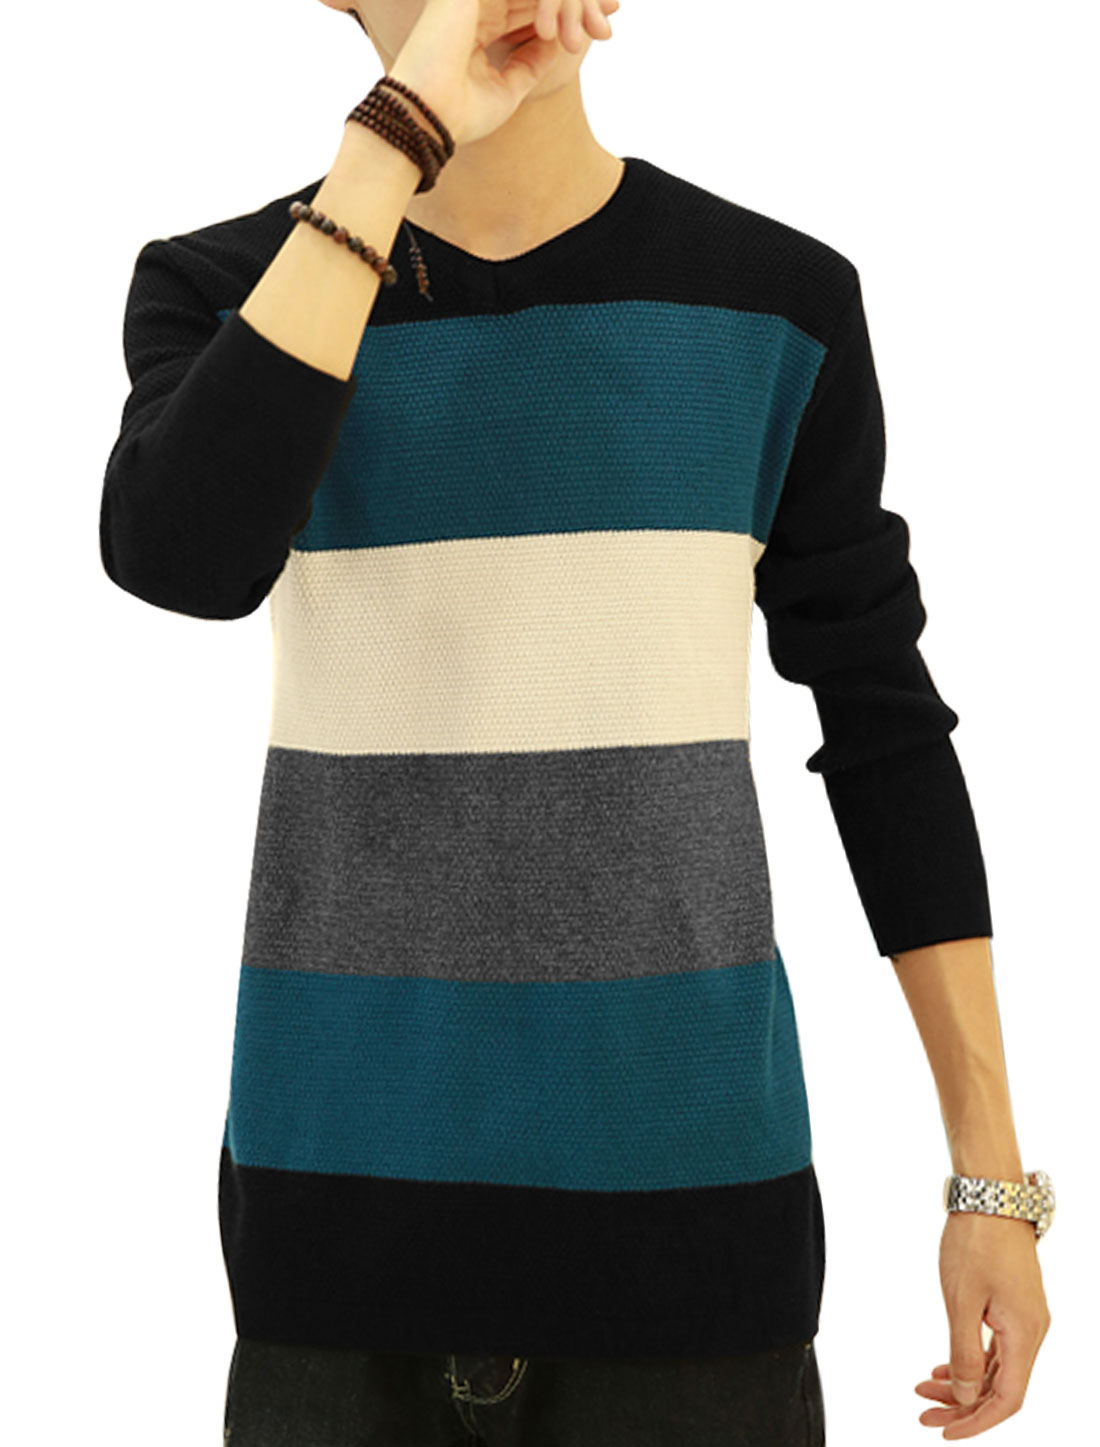 Men Royal Blue Black Slipover Color Block Slim Fit Round Neck Knit Shirt S